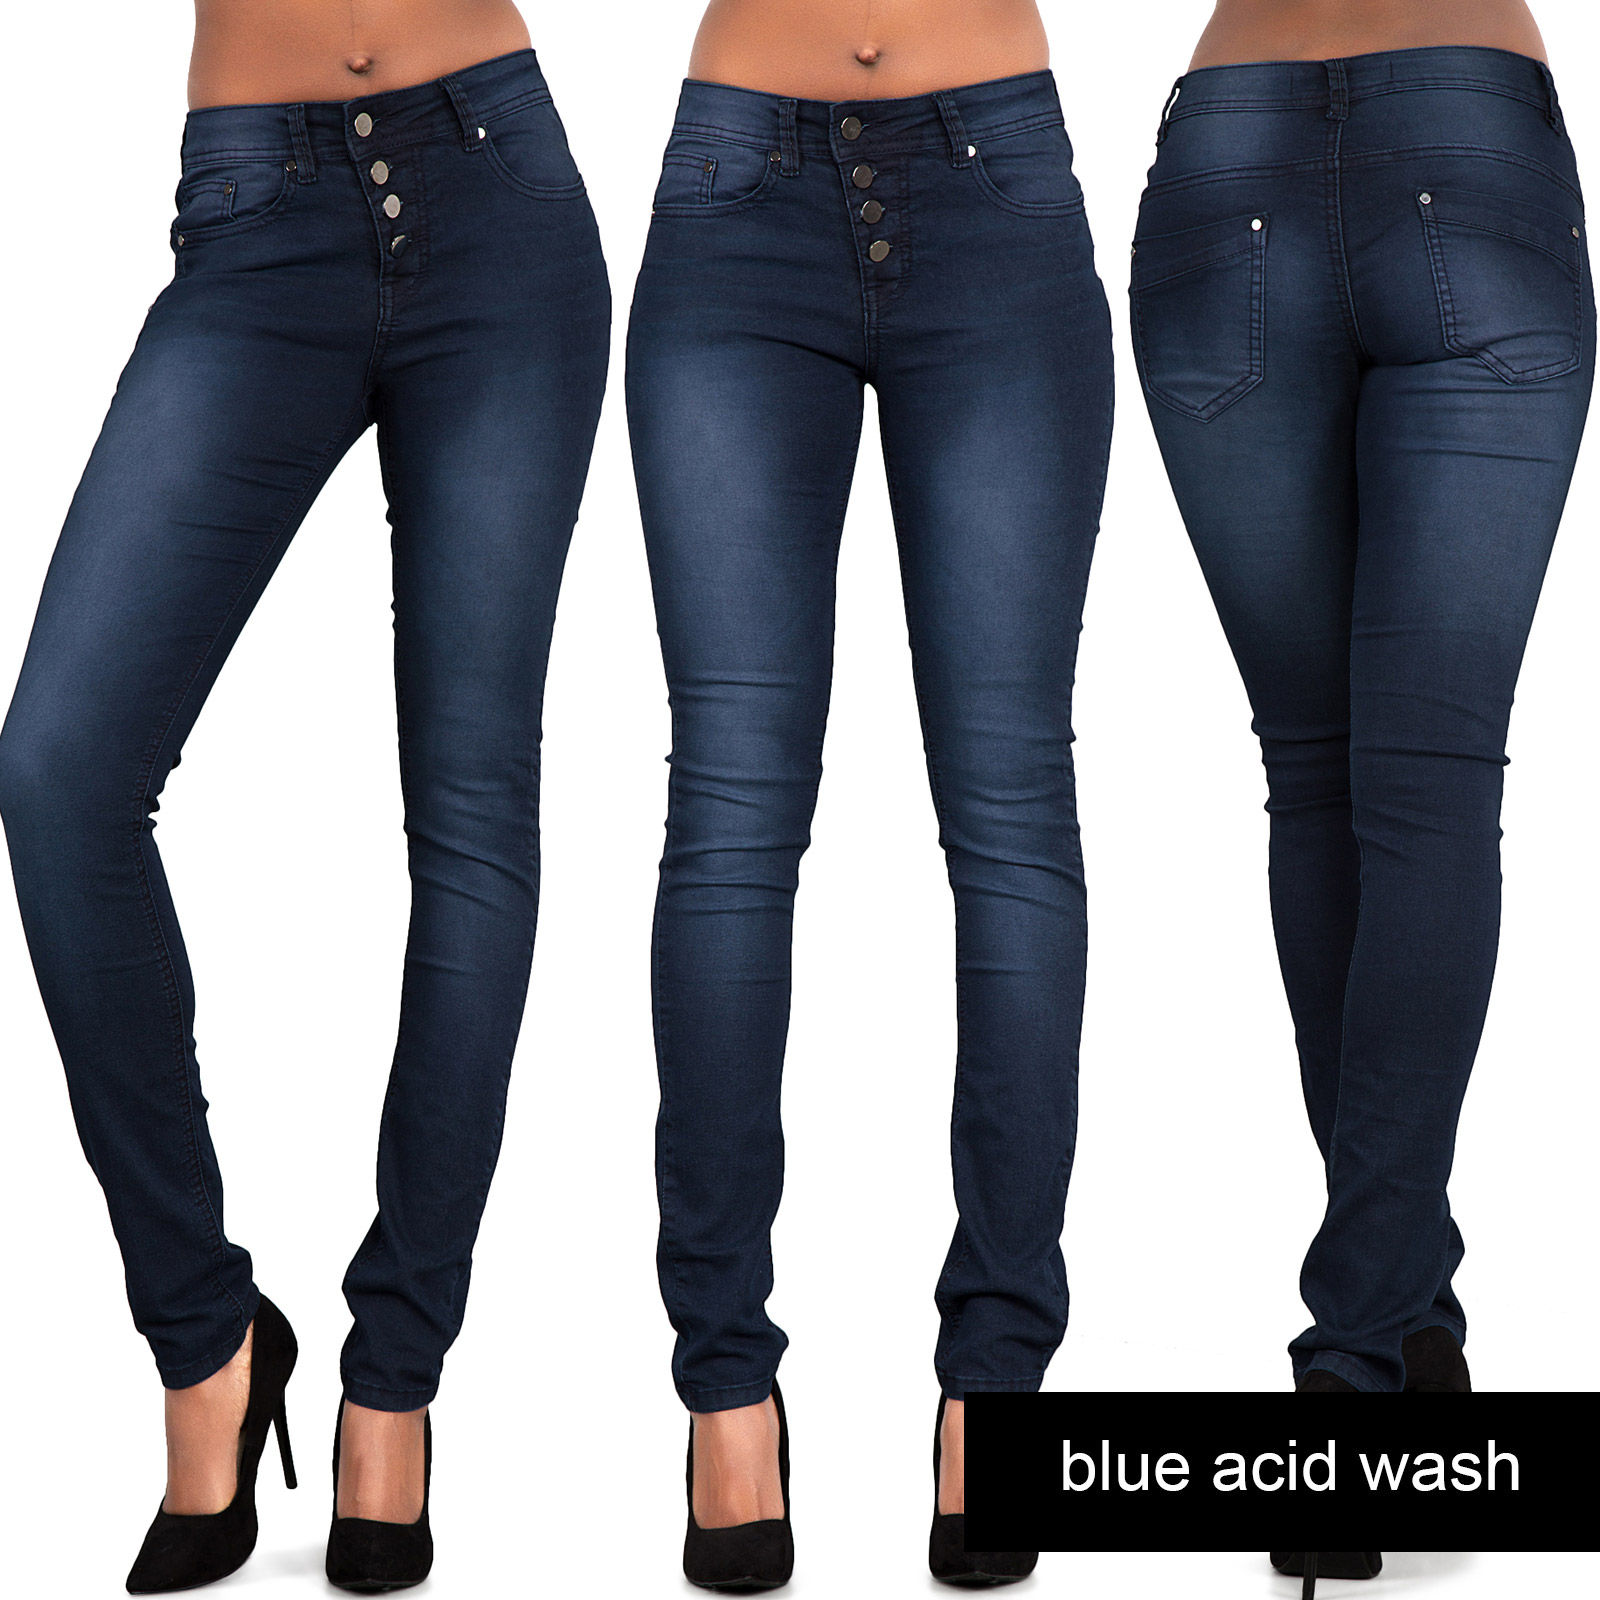 Hang tight in our plus size skinny jeans from Torrid! These lean jeans come in a number of styles so you can have your high waisted skinny jeans and your ripped skinny jeans too. From sexy cropped and ankle baring hems to longer styles that hug in all the right places, your legs have never looked better.